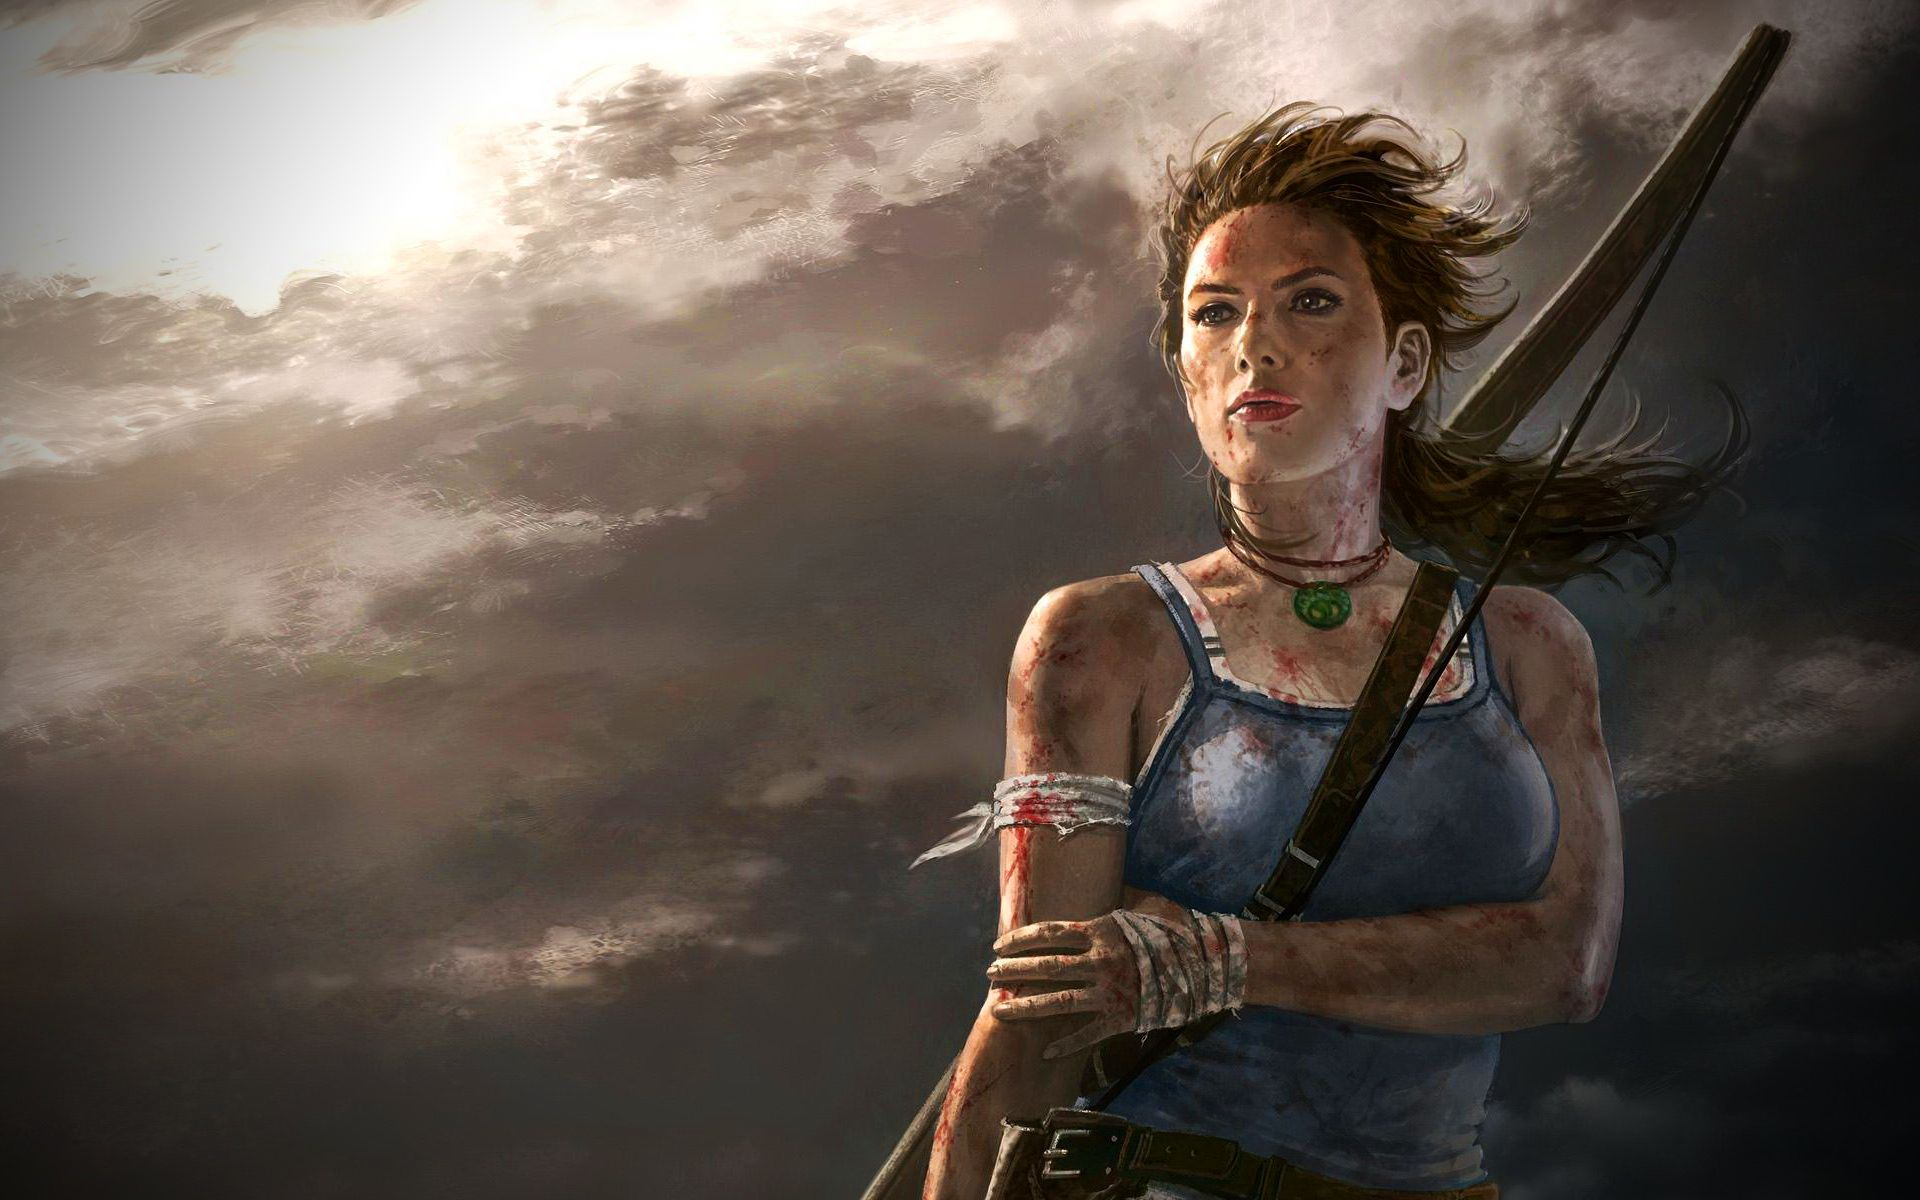 Tomb Raider 2013 Wallpaper: Find Out: Tomb Raider 2013 Wallpaper On Http://hdpicorner